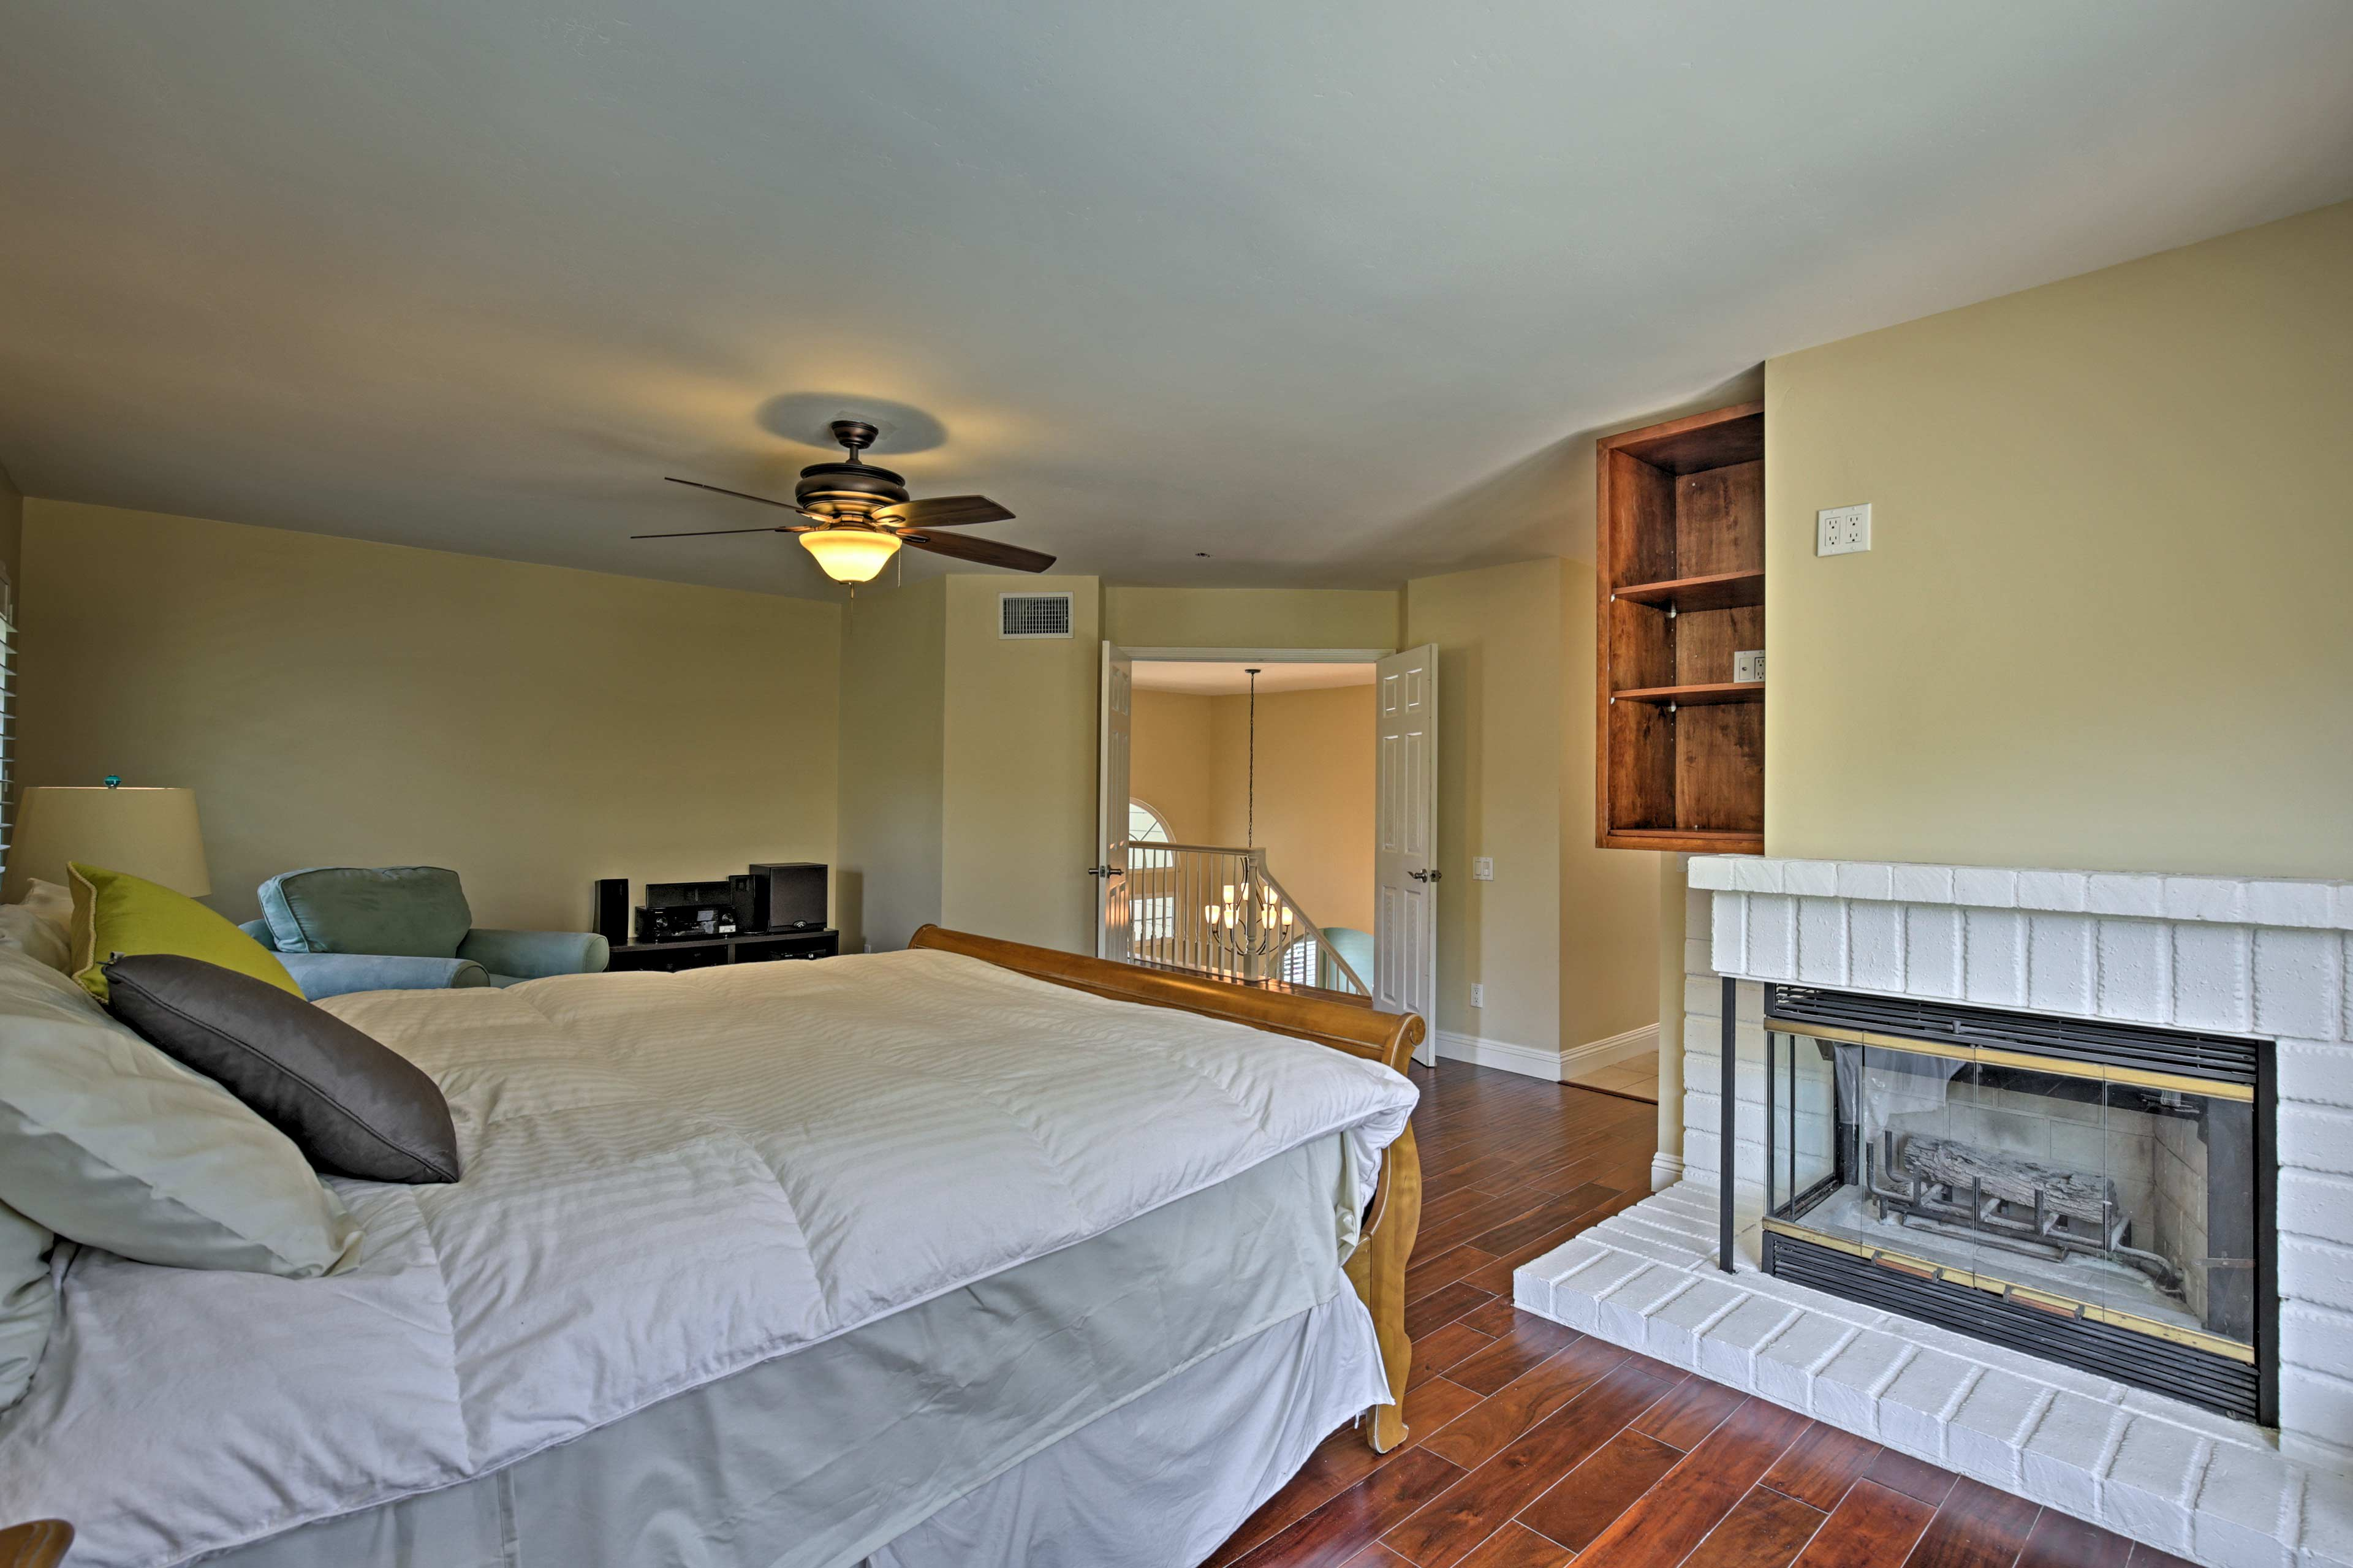 Fall asleep to the warm glow of the gas fireplace.